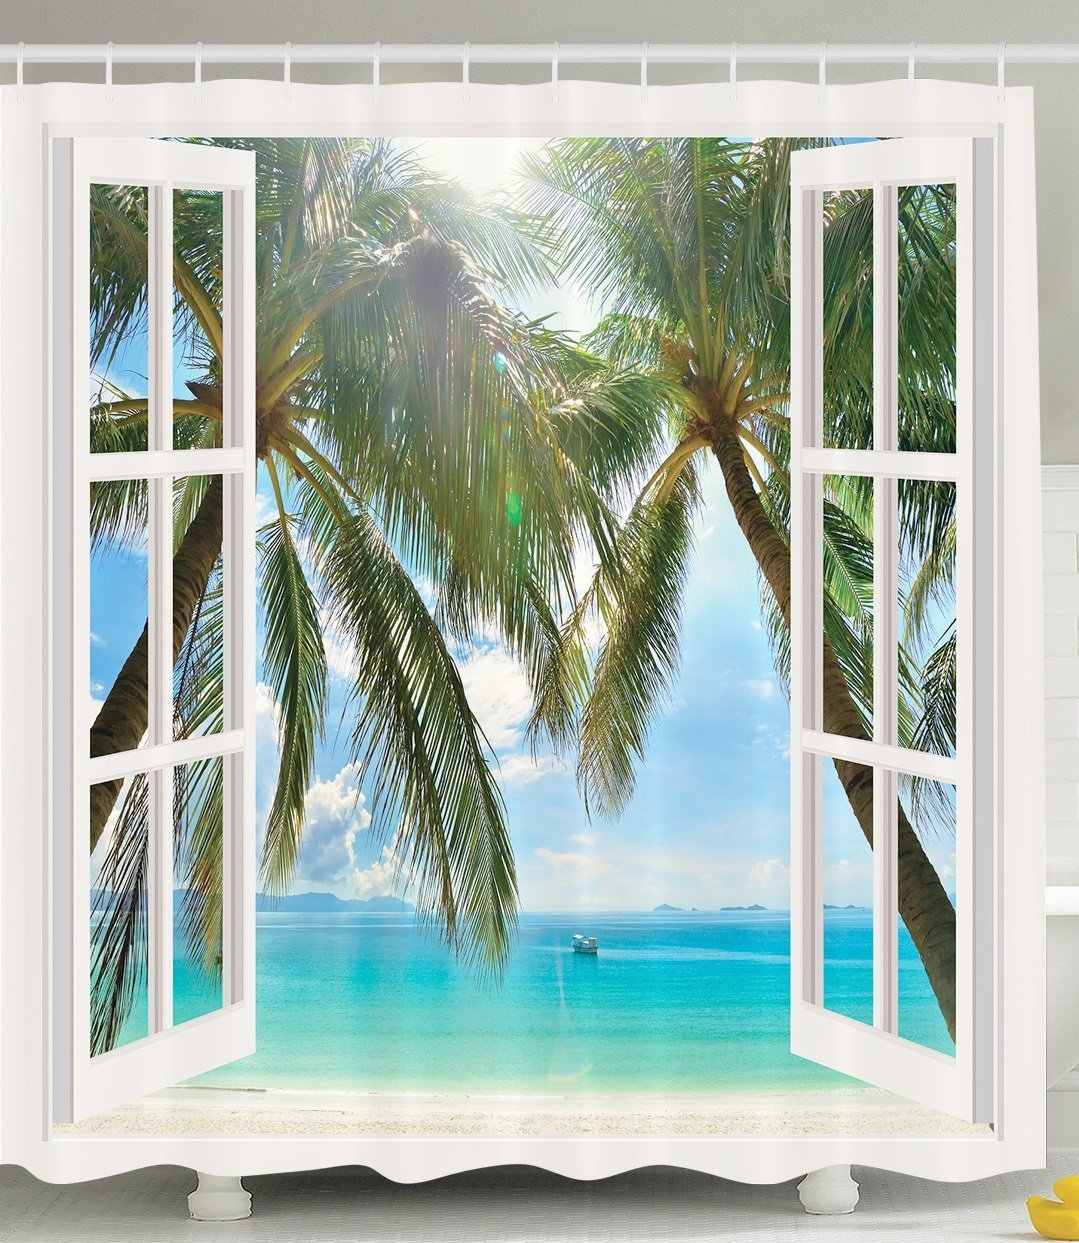 Ocean Decor Shower Curtain By Palm Trees Tropical Island